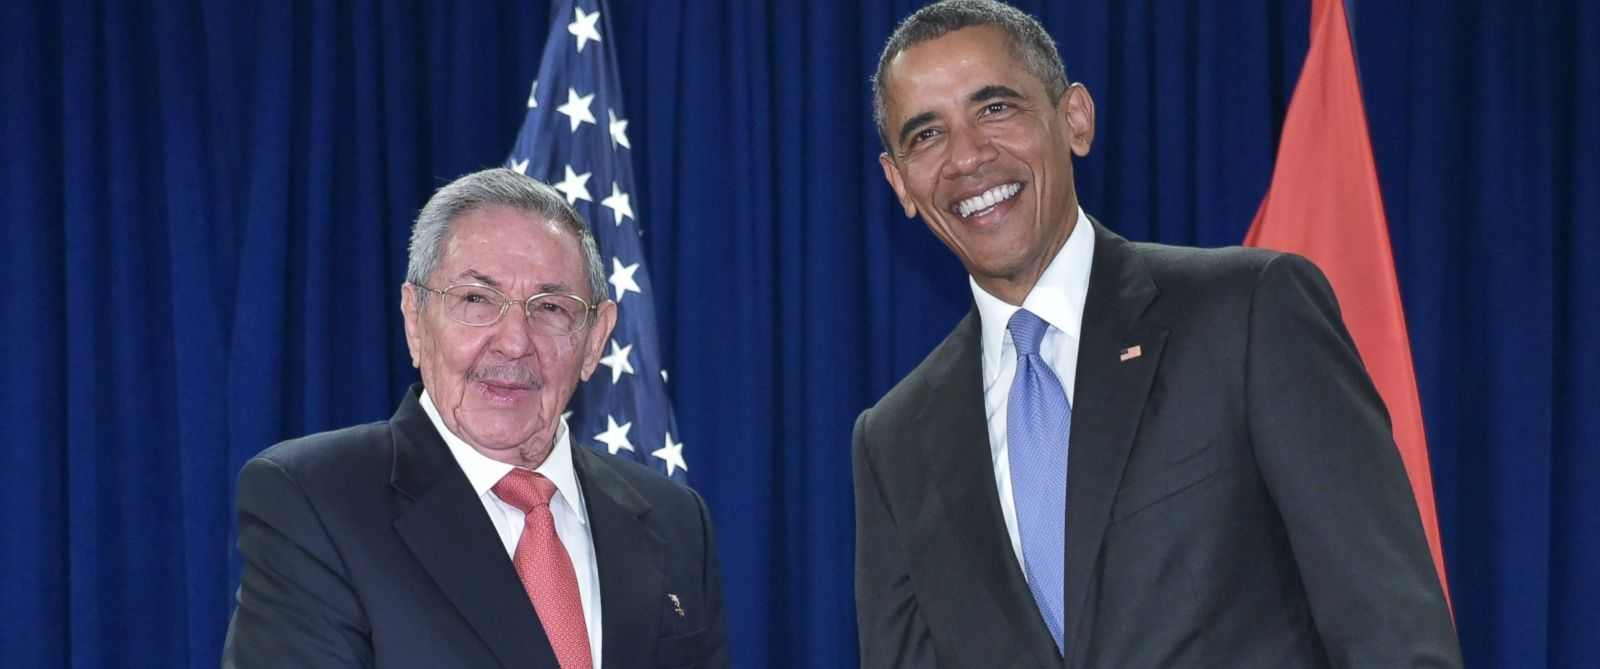 PHOTO:US President Barack Obama shakes hands with Cubas President Raul Castro during a bilateral meeting on the sidelines of the United Nations General Assembly at UN headquarters in New York, Sept. 29, 2015.